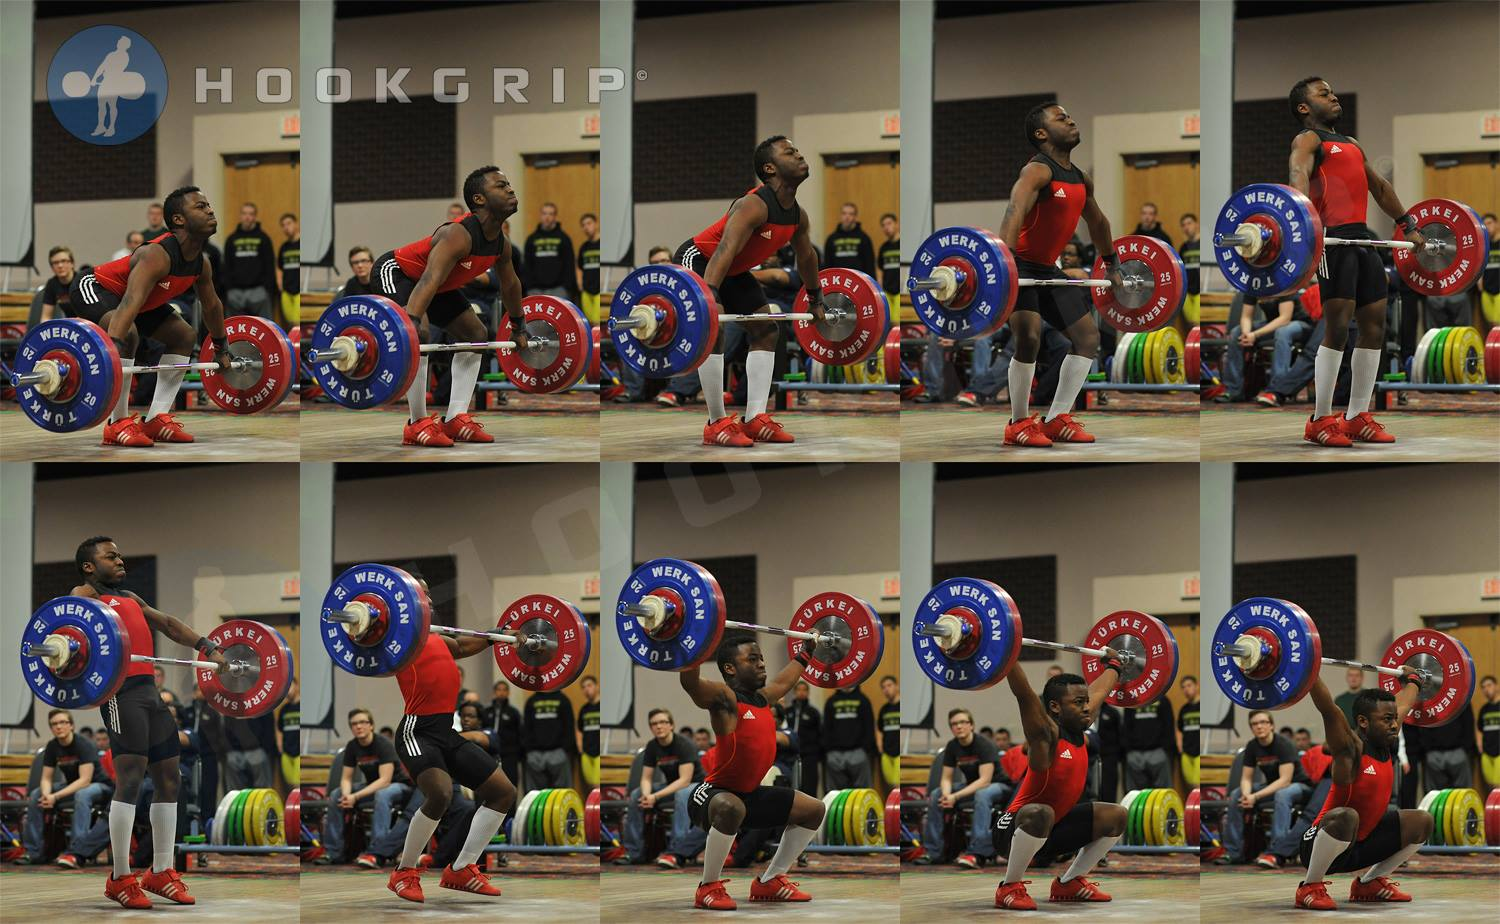 """Darrel """"Skittles"""" Barnes (-62kg, USA) snatching 121kg at the 2014 Junior Nationals. This lift (3kg short of double bodyweight) set a new Junior and Senior American record by breaking LeGrand Sakamaki's 120kg lift from way back in 1998.   - Via:    hookgrip"""